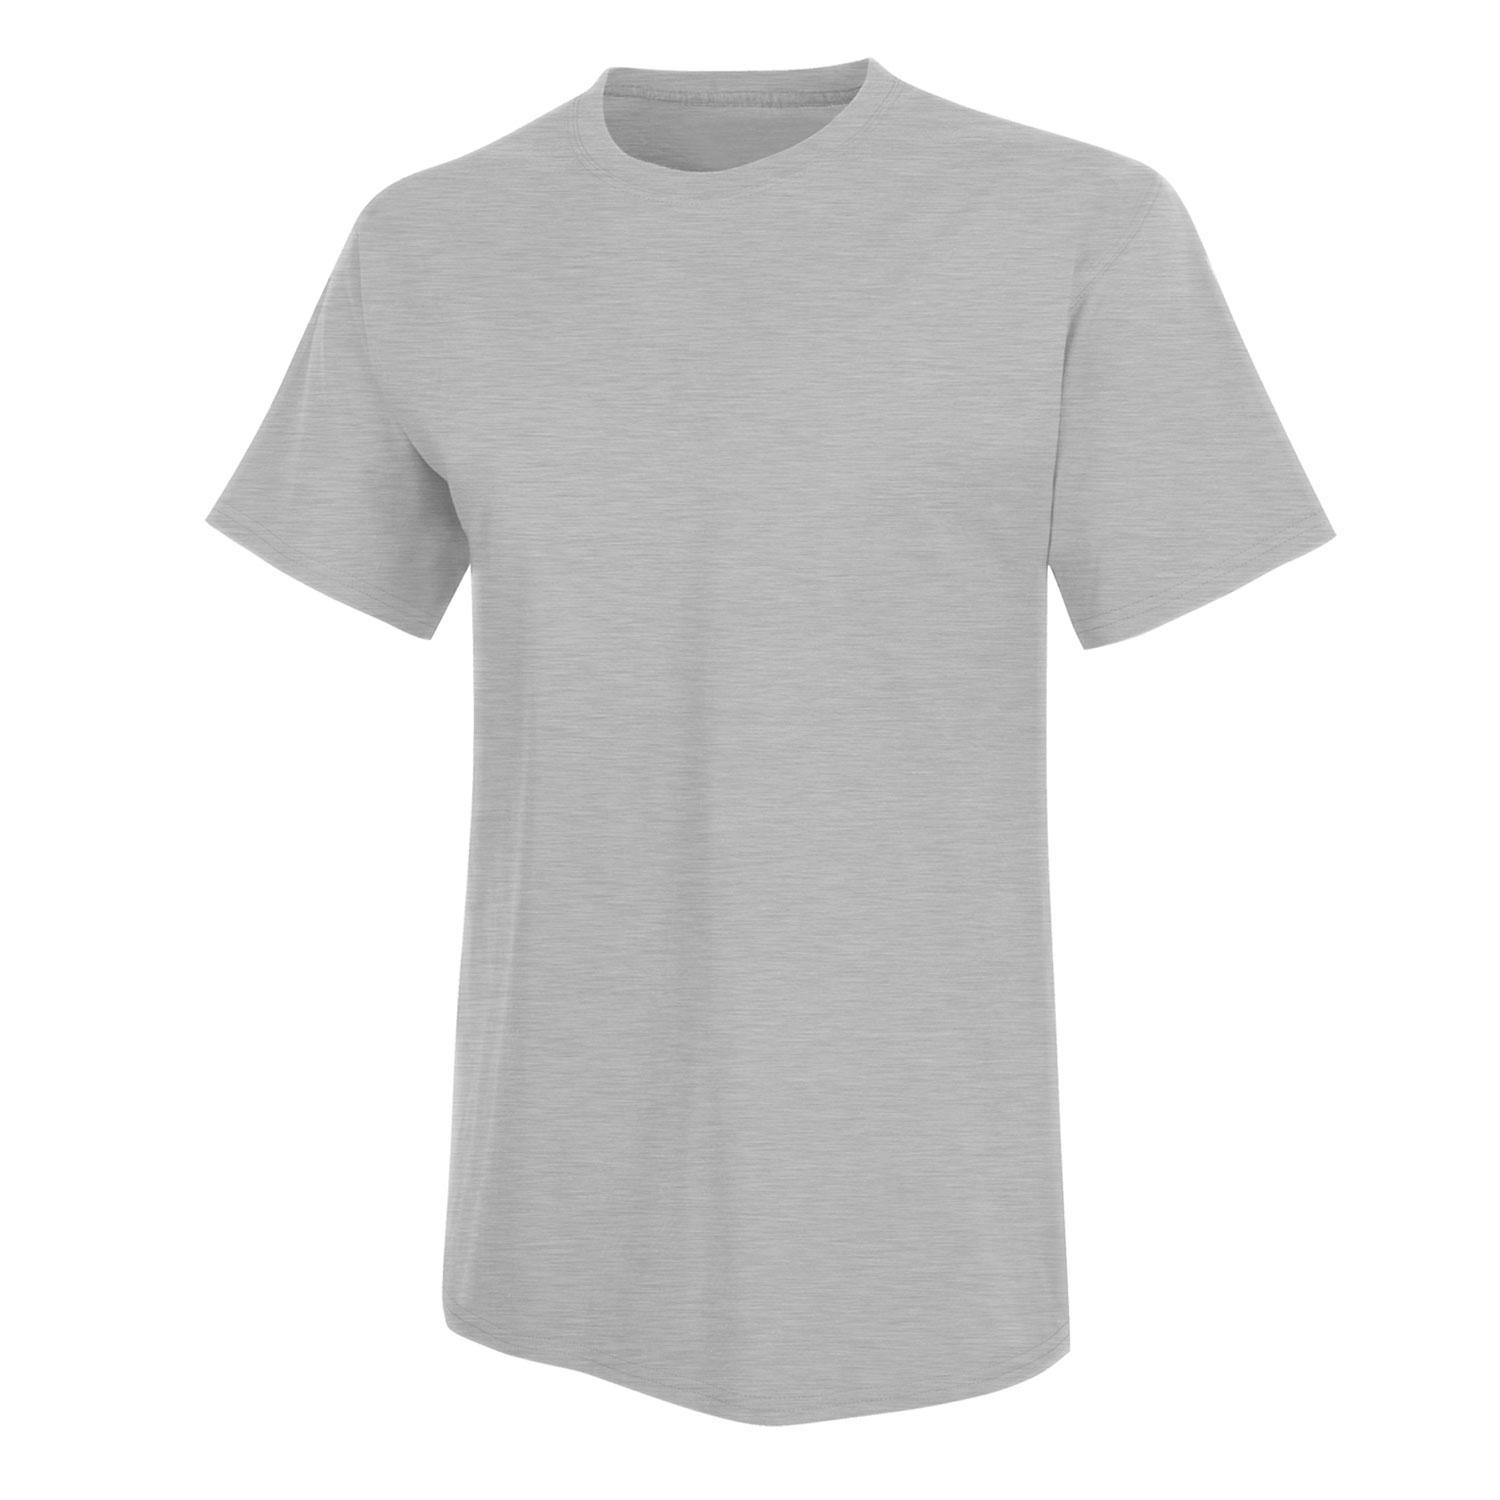 Champion Tactical Vapor Cotton Tee